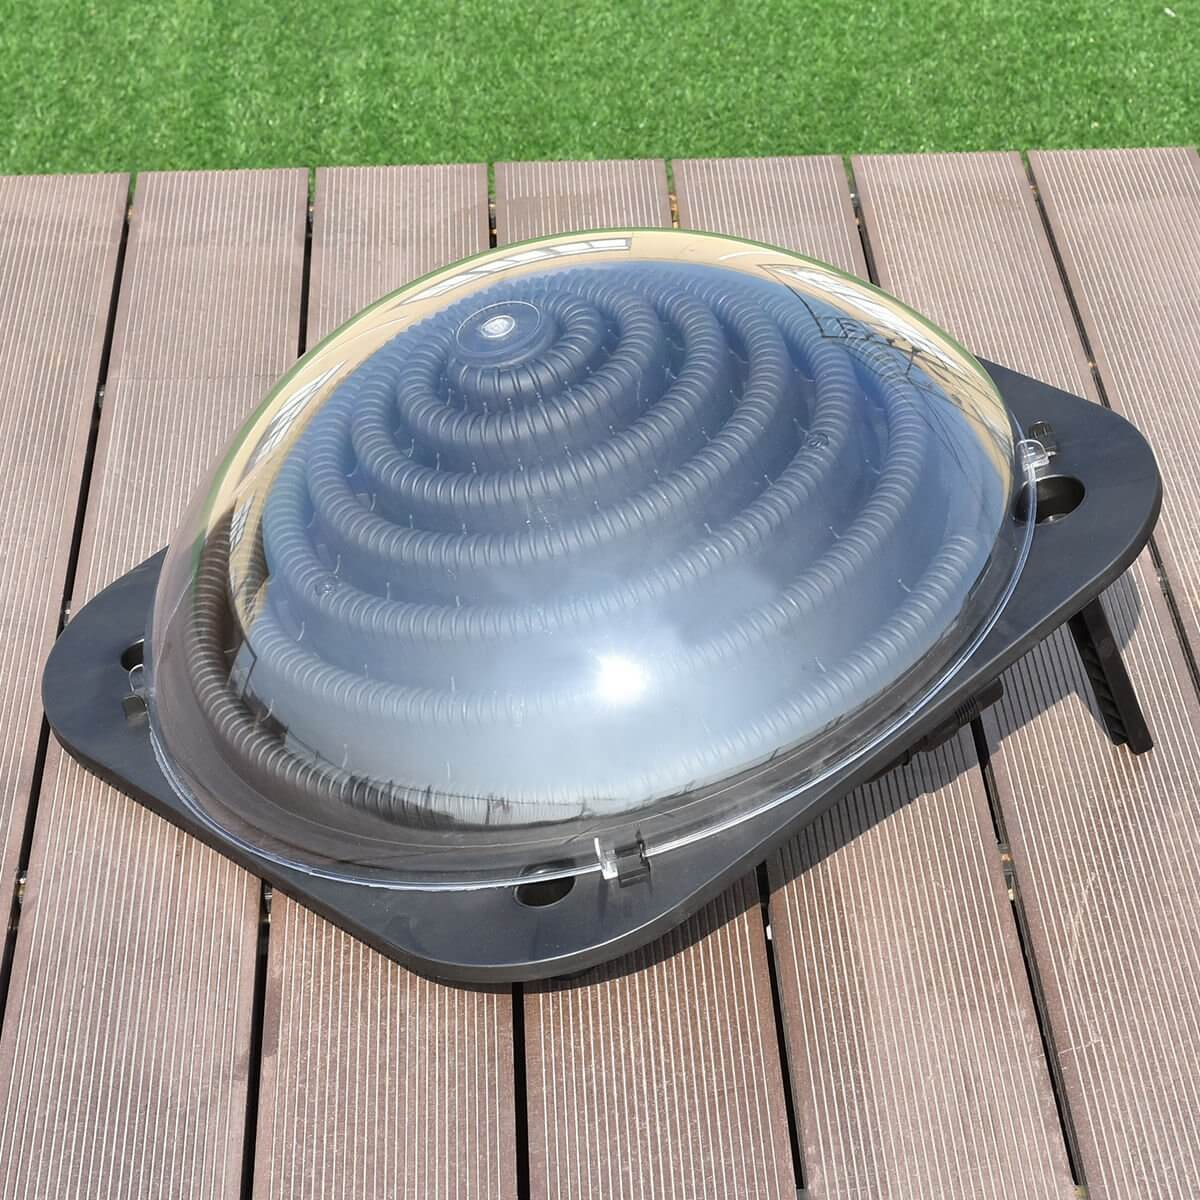 There are even solar panel pool heaters